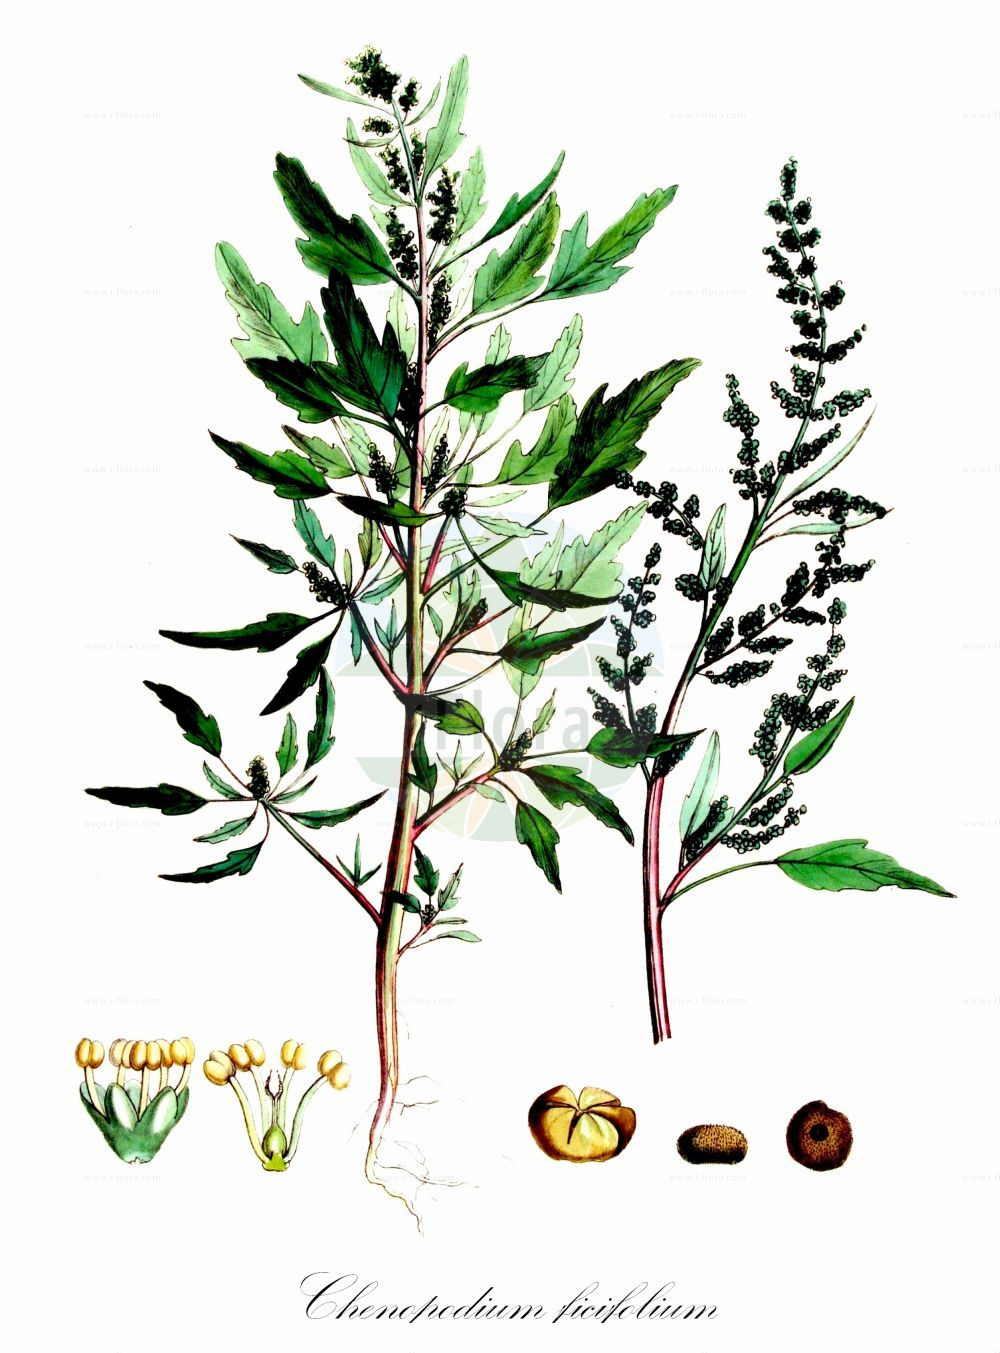 Historische Abbildung von Chenopodium ficifolium (Feigenblaettriger Gaensefuss - Fig-leaved Goosefoot). Das Bild zeigt Blatt, Bluete, Frucht und Same. ---- Historical Drawing of Chenopodium ficifolium (Feigenblaettriger Gaensefuss - Fig-leaved Goosefoot).The image is showing leaf, flower, fruit and seed.(Chenopodium ficifolium,Feigenblaettriger Gaensefuss,Fig-leaved Goosefoot,Figleaf Goosefoot,Chenopodium,Gaensefuss,Goosefoot,Amaranthaceae,Fuchsschwanzgewaechse,Pigweed family,Blatt,Bluete,Frucht,Same,leaf,flower,fruit,seed,Kops (1800-1934))